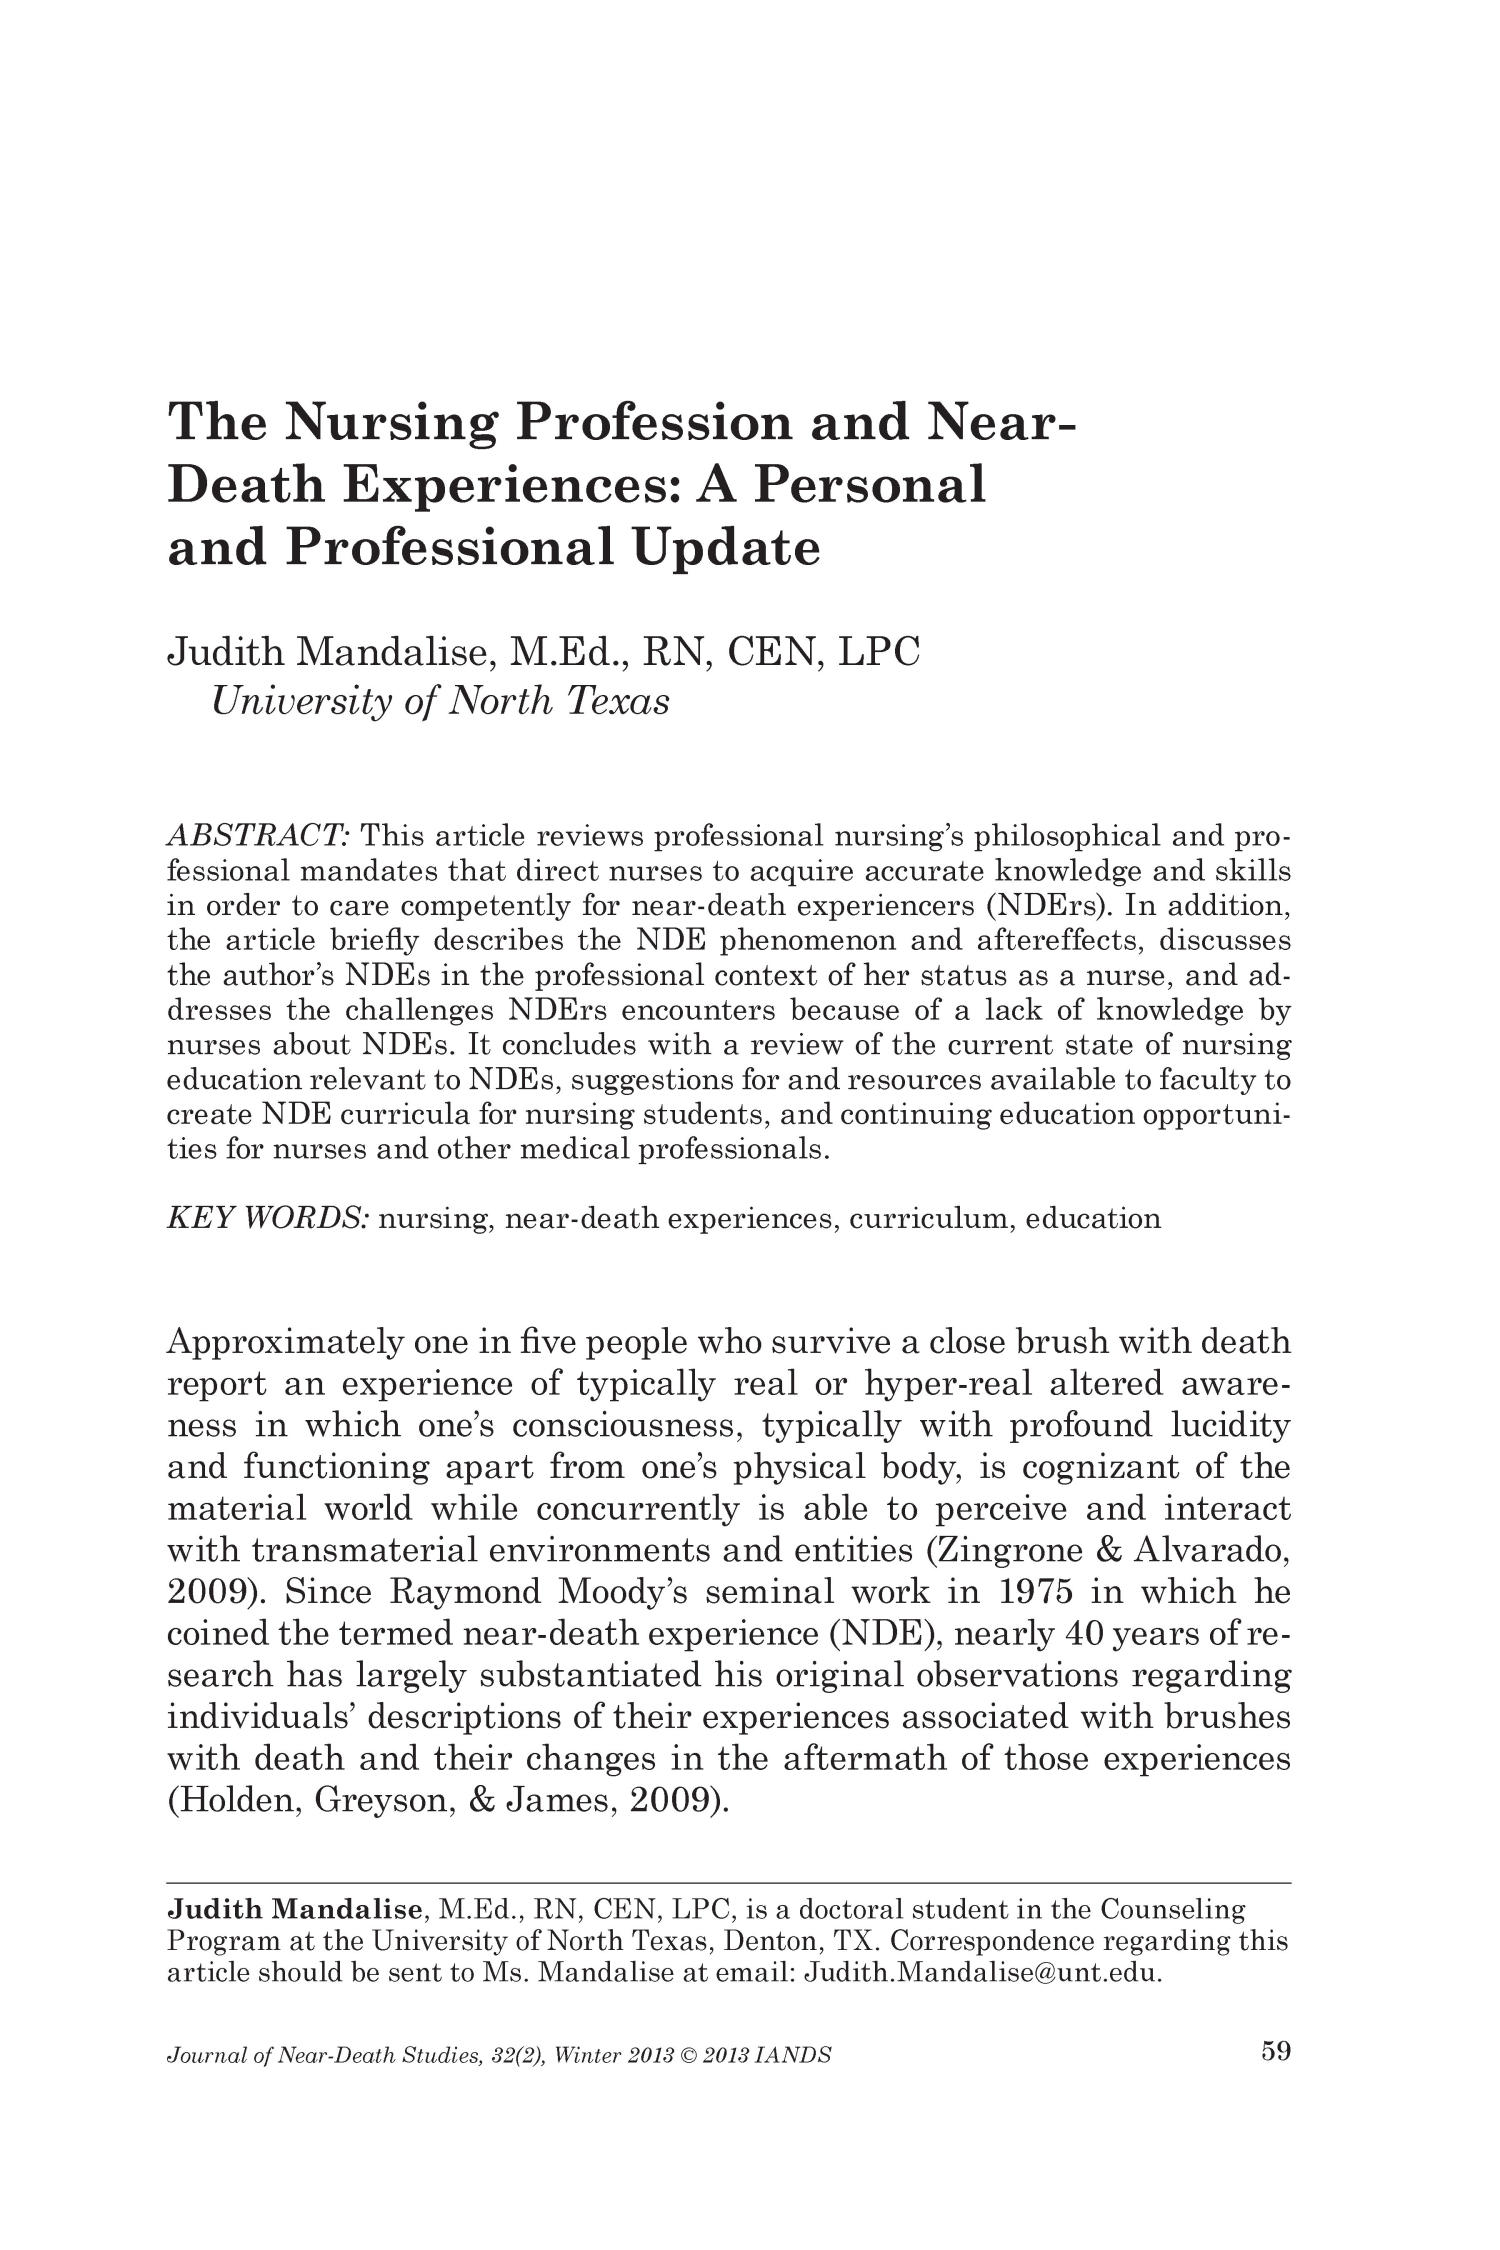 The Nursing Profession And Near Death Experiences A Personal And Professional Update Unt Digital Library